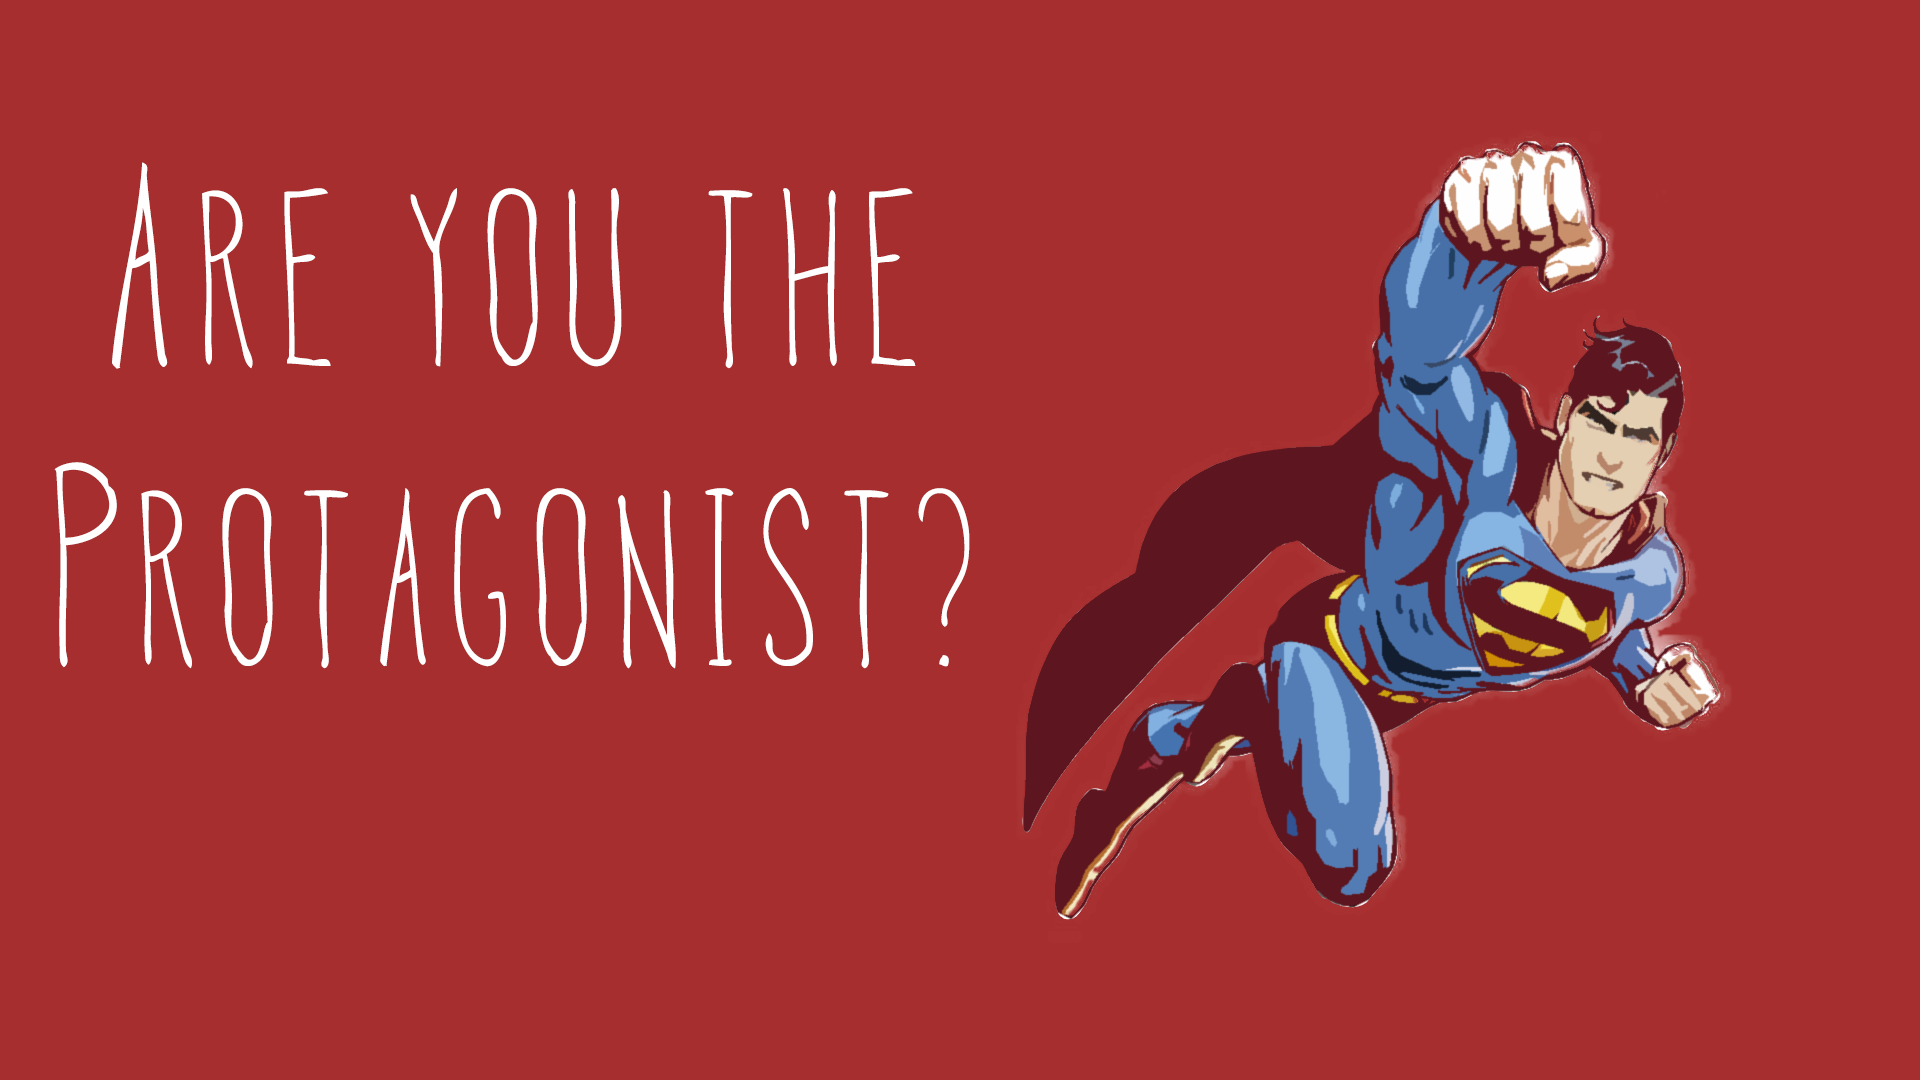 If life were a movie, would you be the protagonist? Image credit: www.fun.com Artist: Mark El